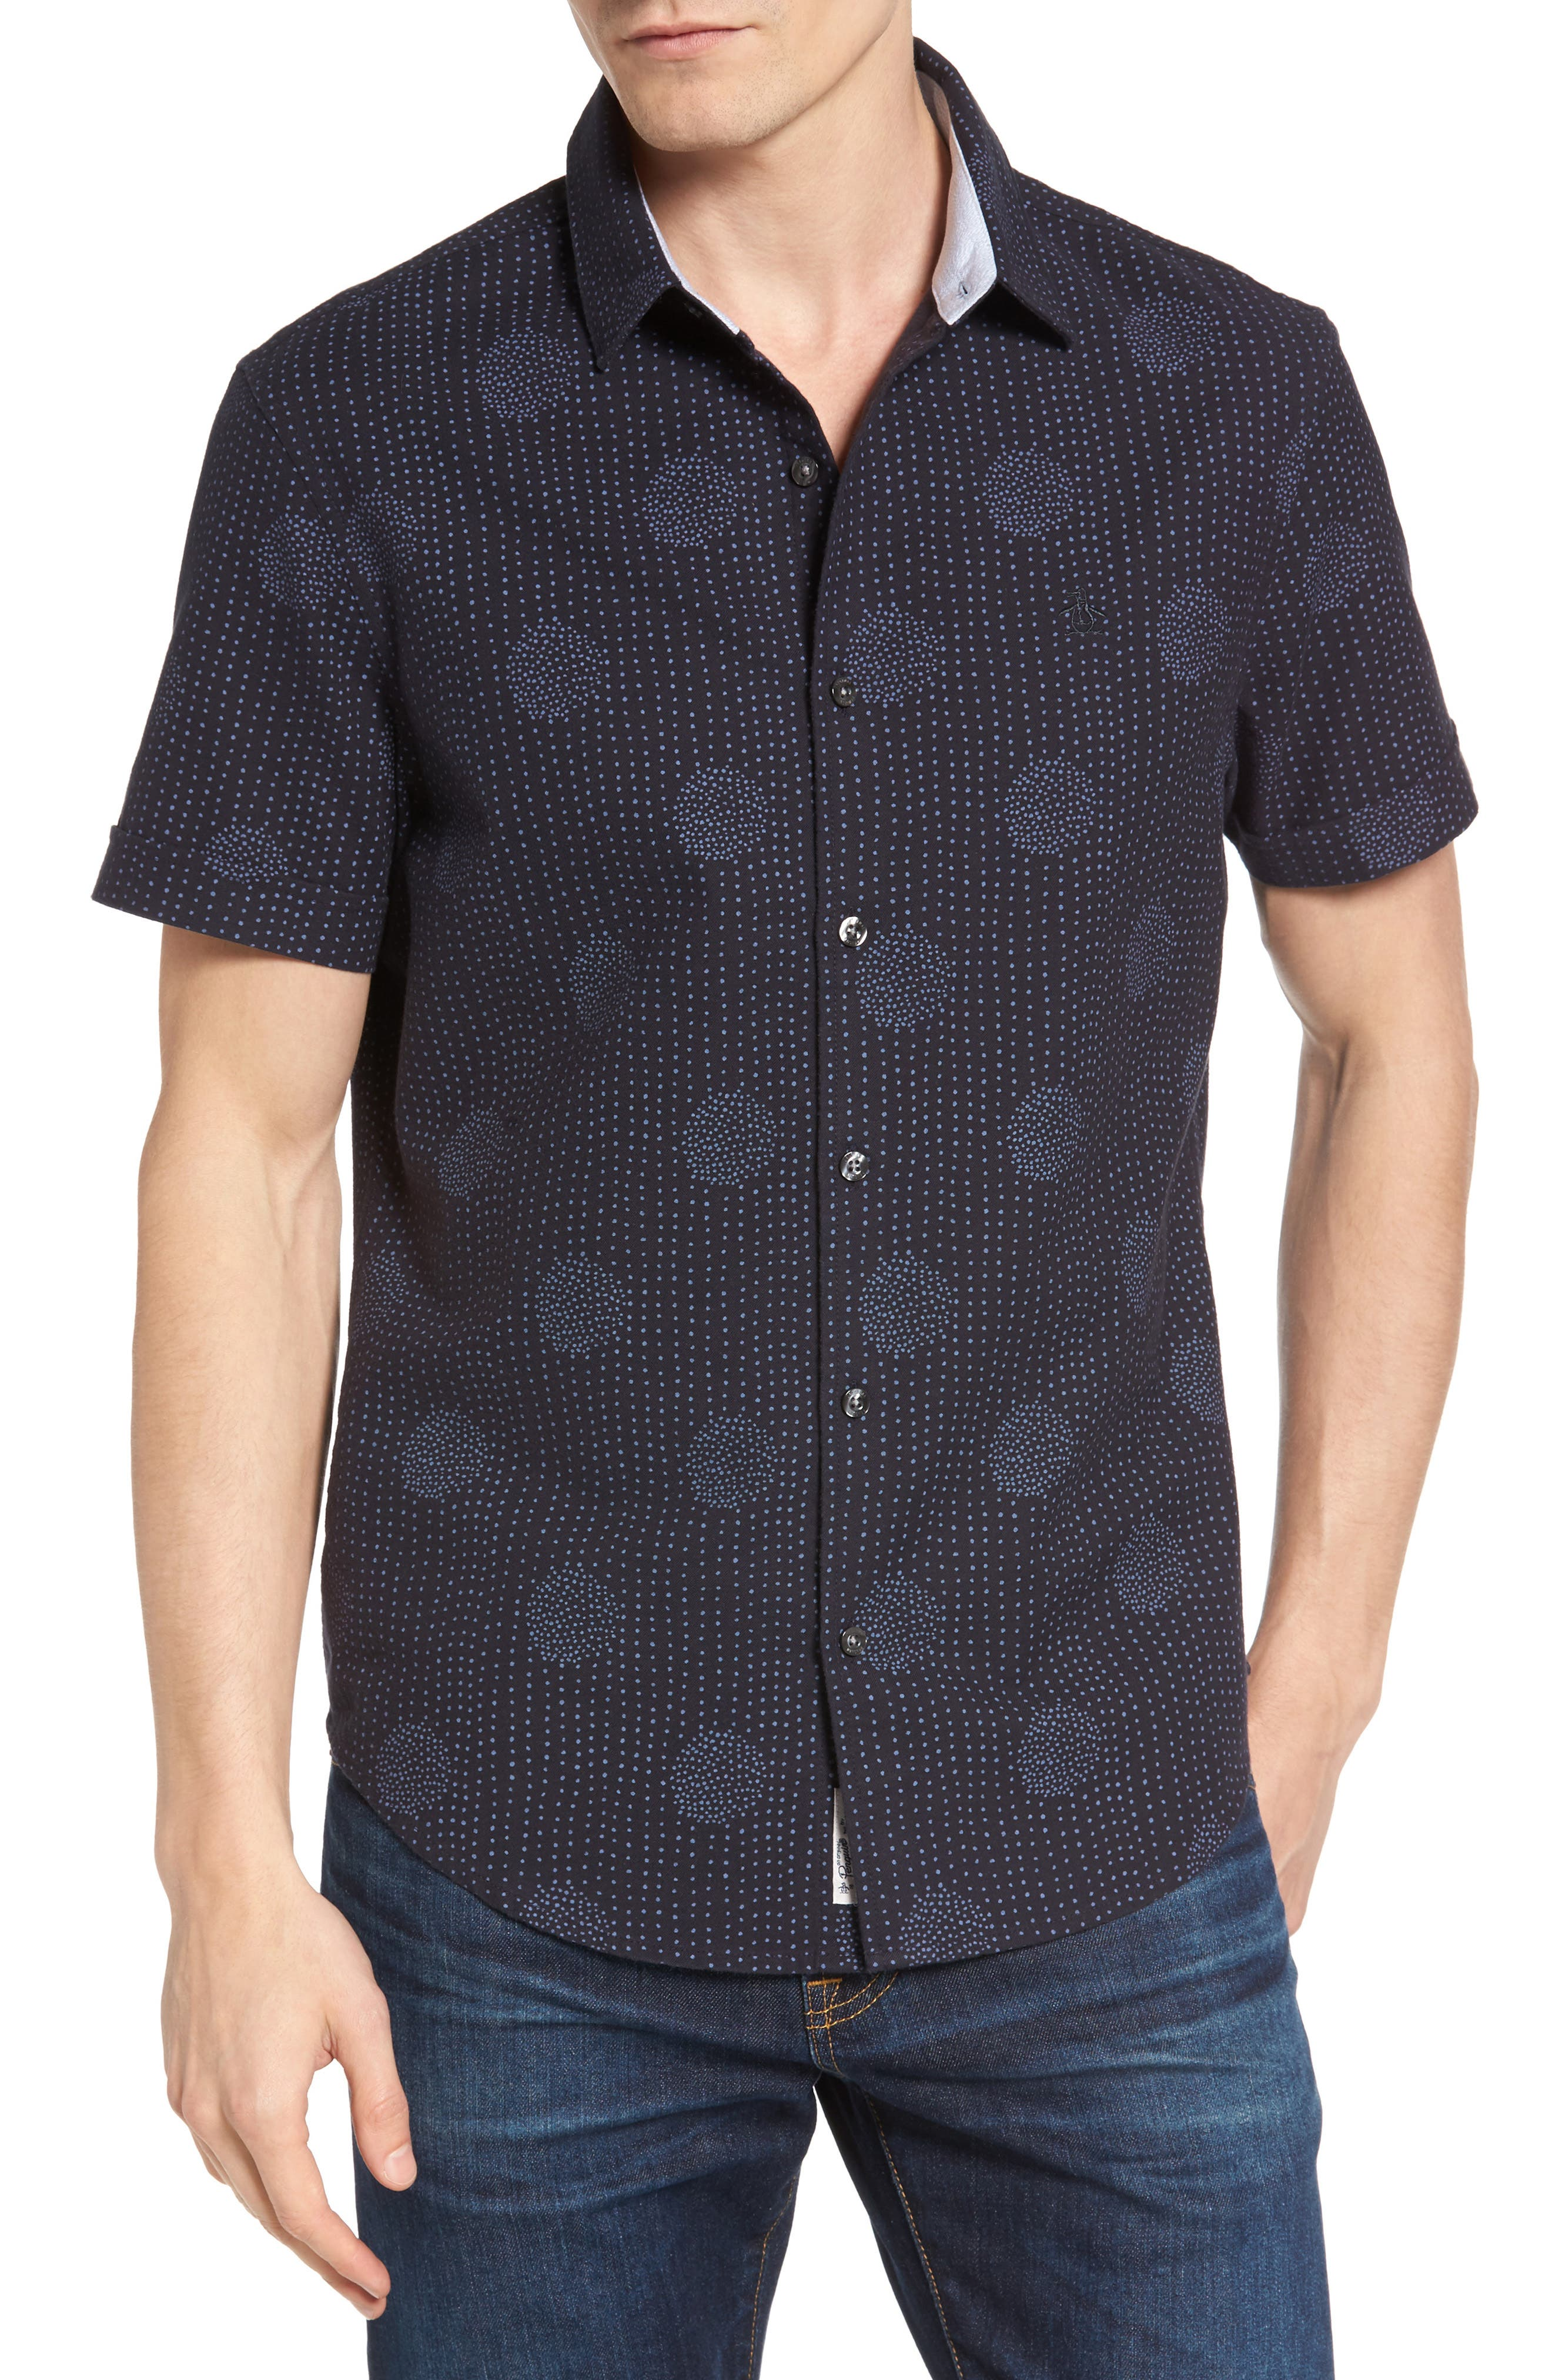 Heritage Slim Fit Dot Print Shirt,                             Main thumbnail 1, color,                             413